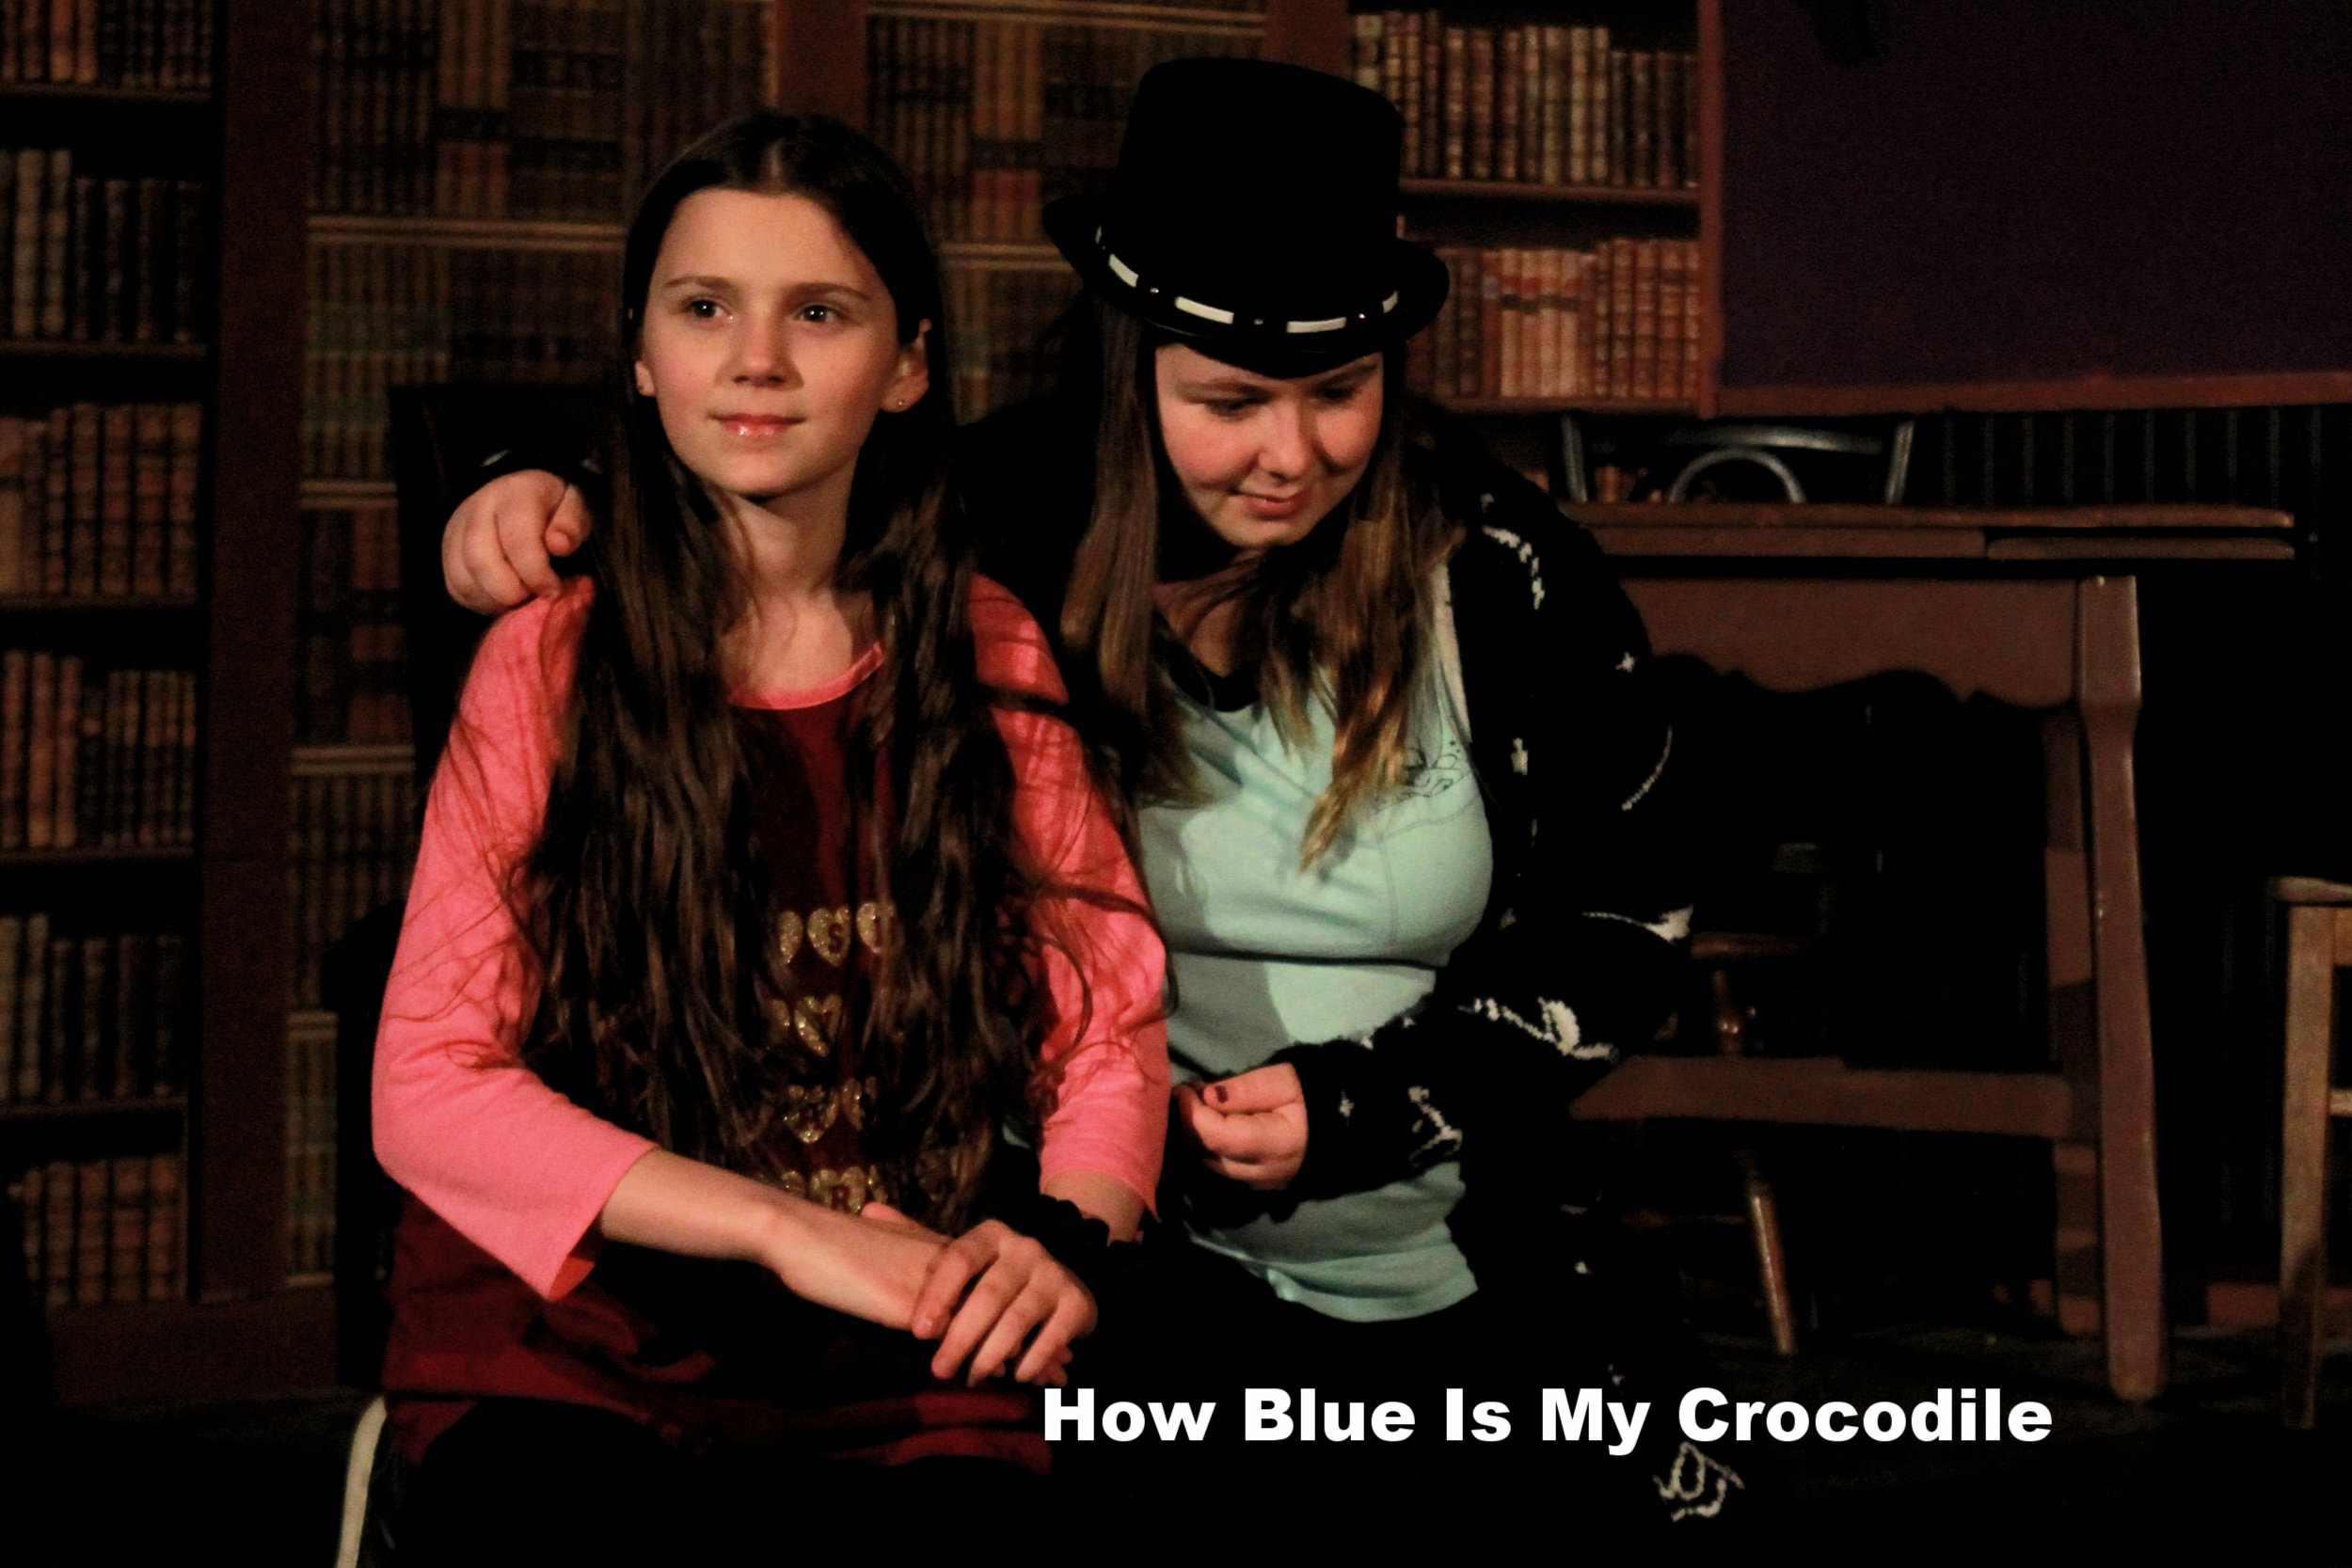 How Blue Is My Crocodile